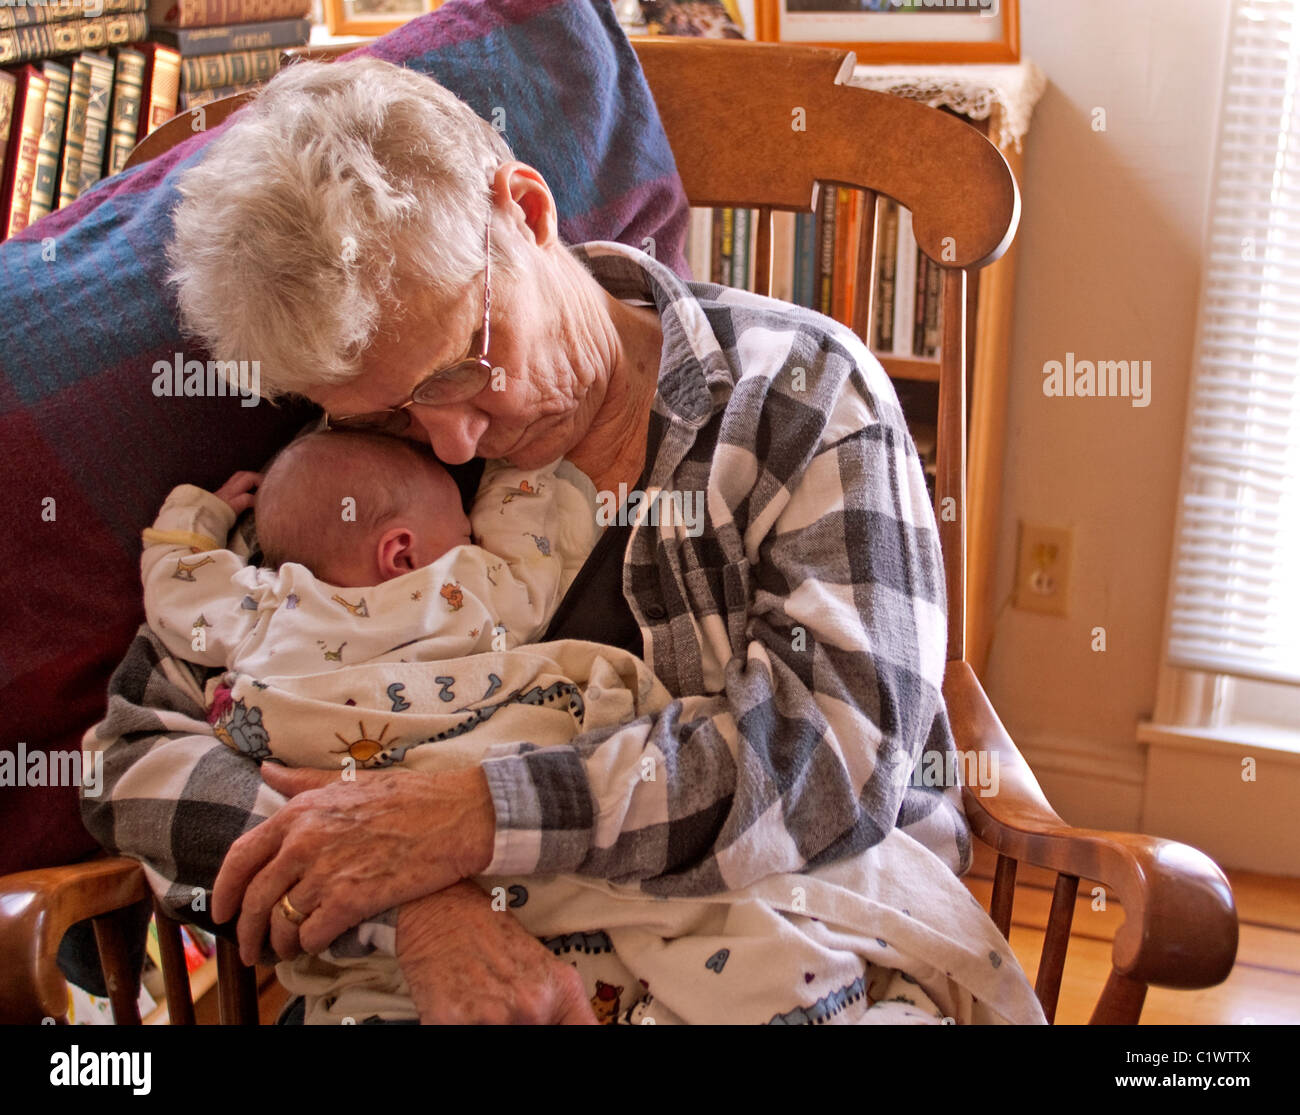 Grandmother napping with her newborn grandson. - Stock Image